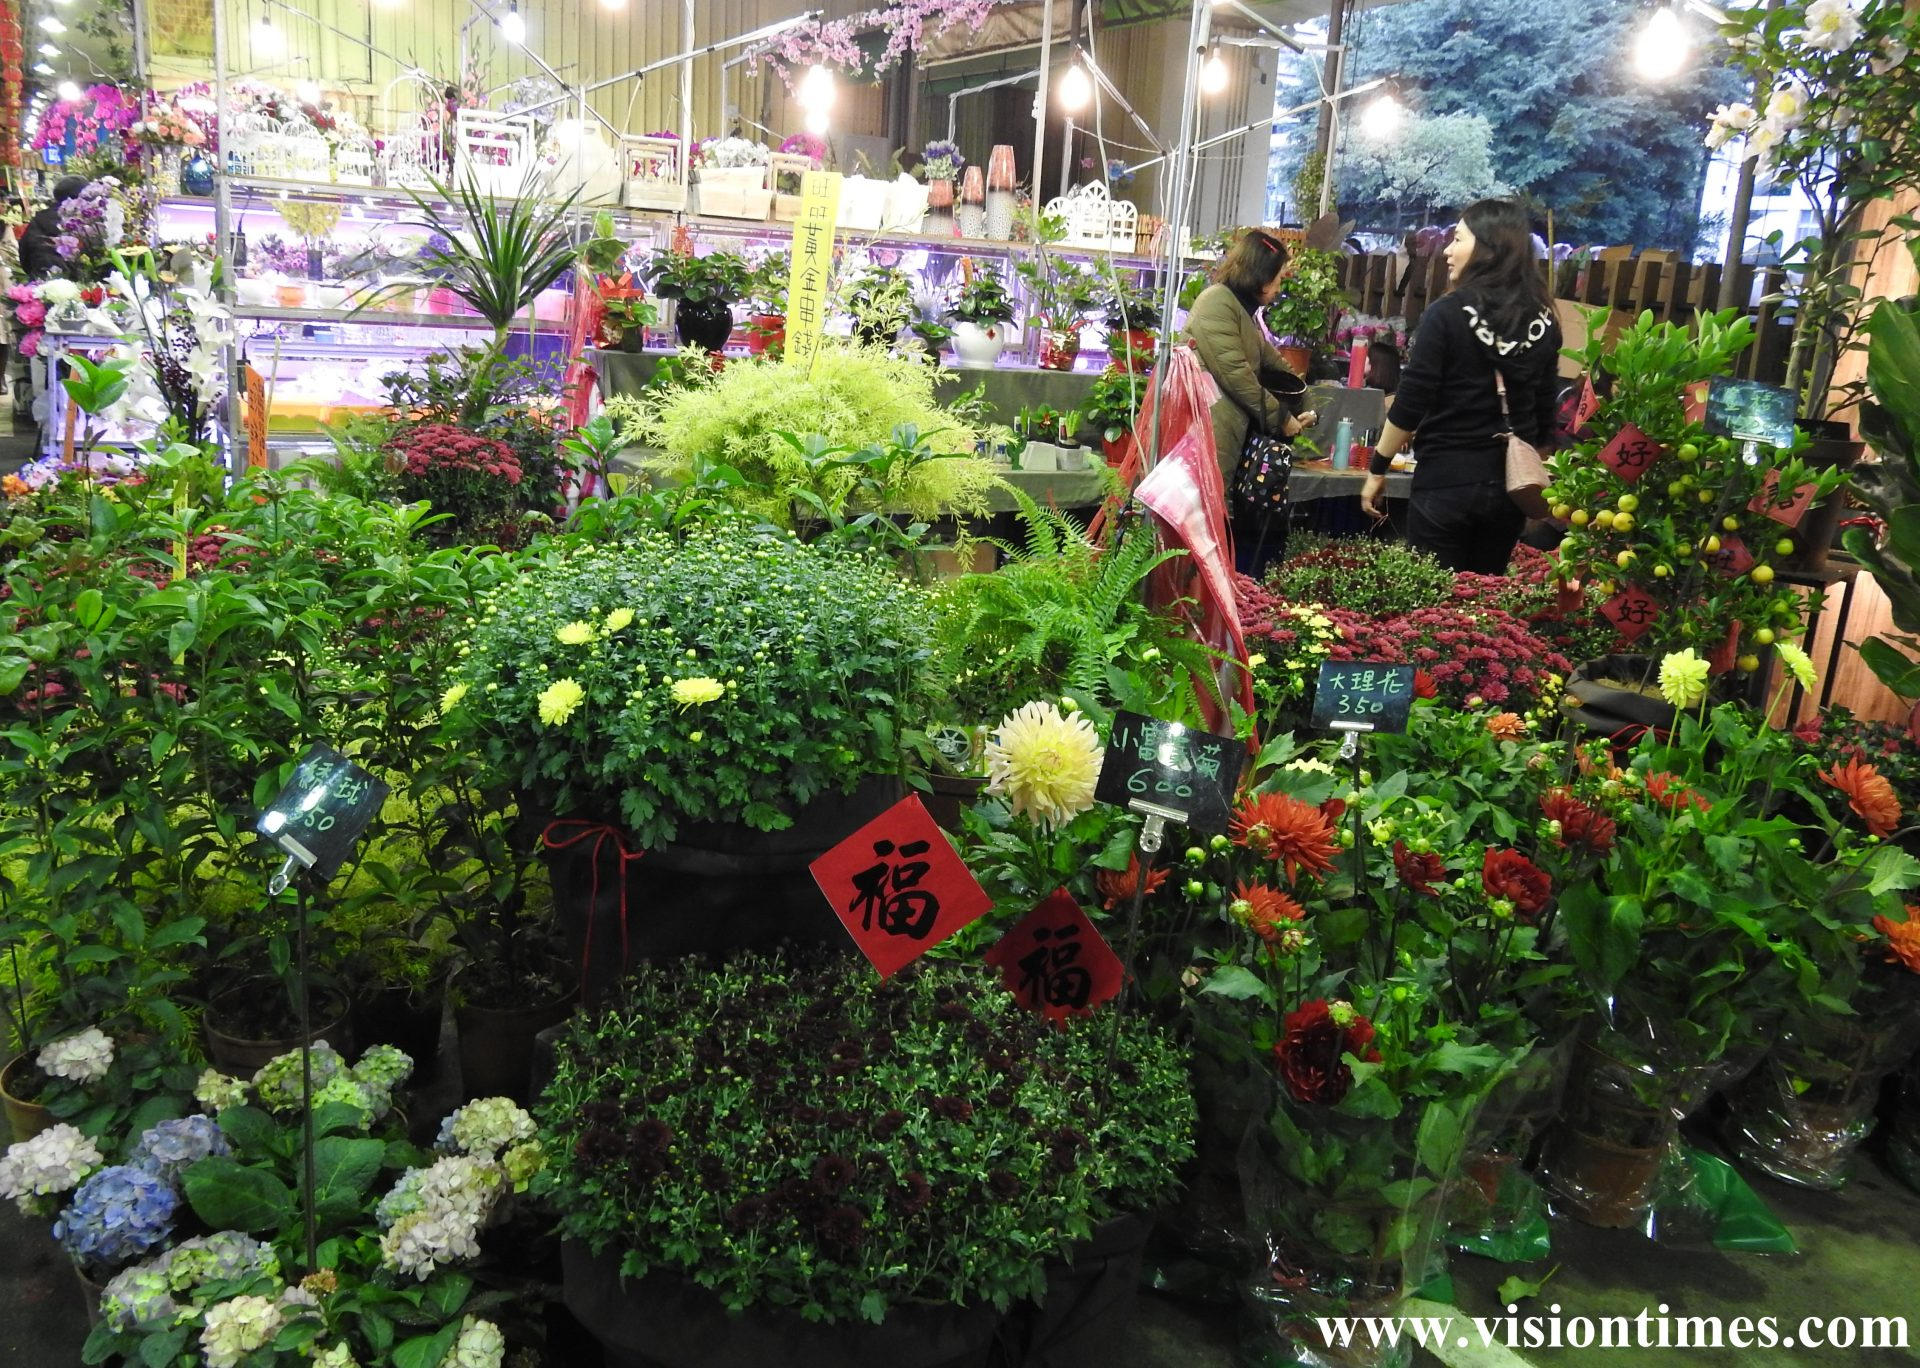 There are 250 peonies in 10 different breeds on display along with popular local flowers at Jianguo Holiday Flower Market. (Image: Billy Shyu / Vision Times)